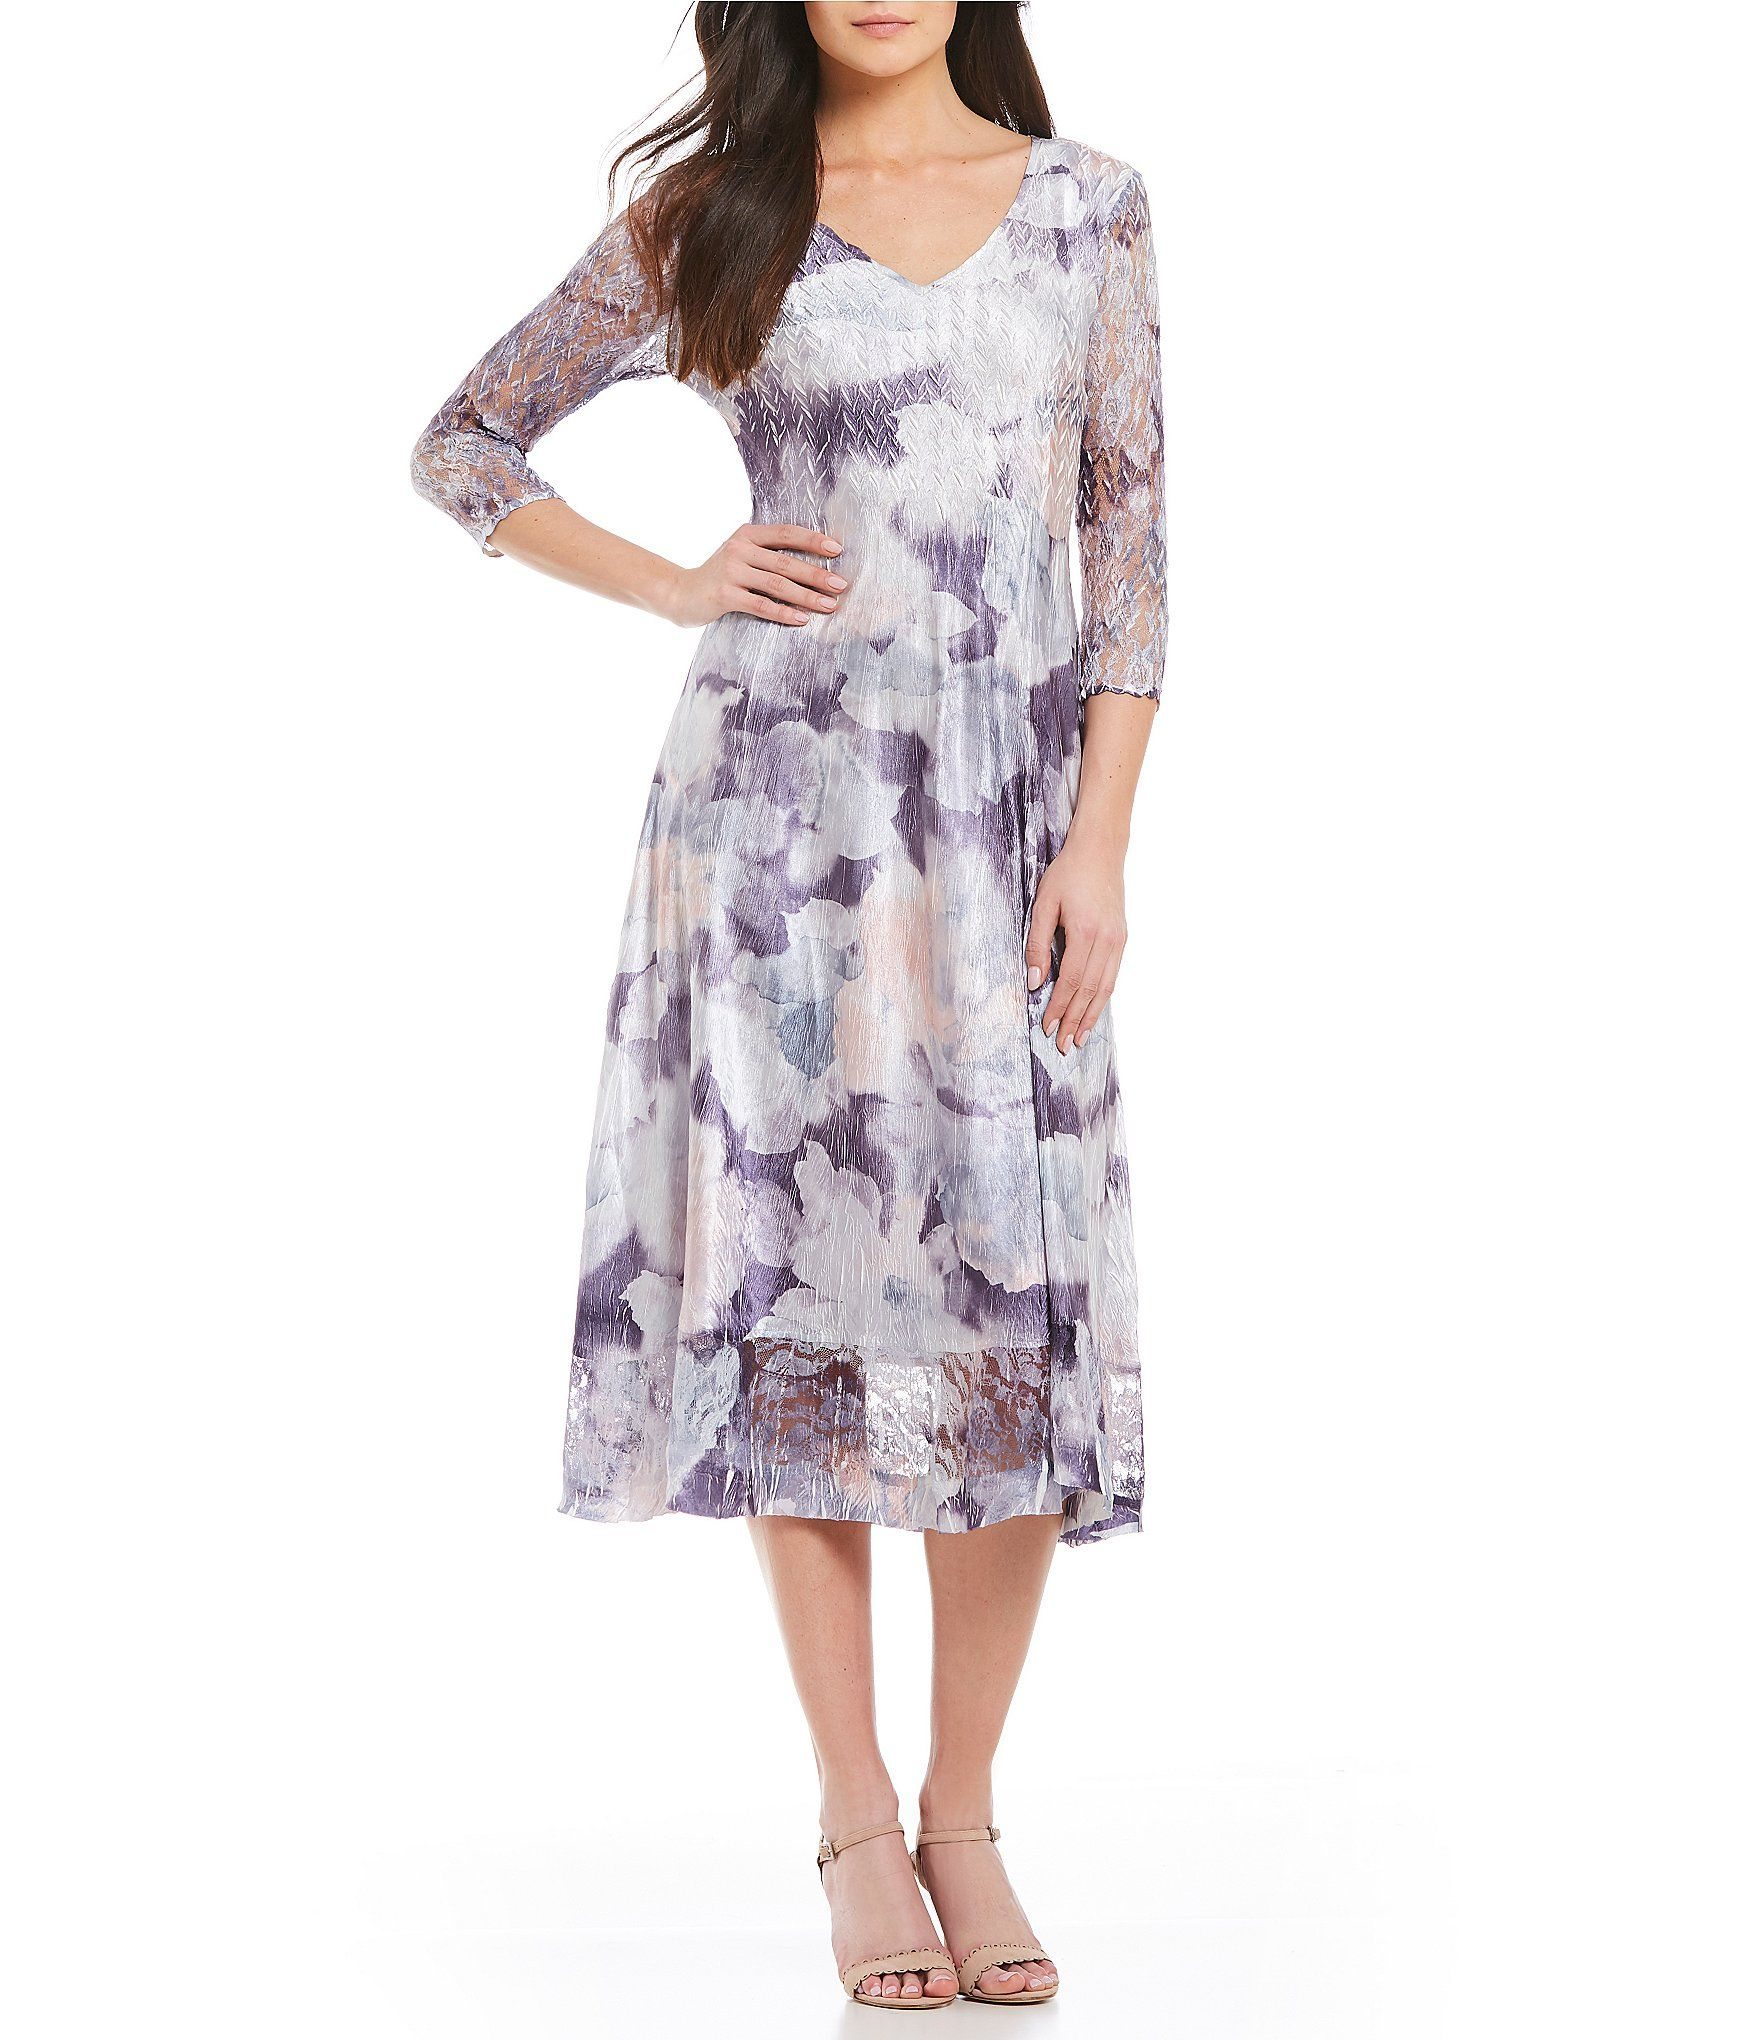 6199a974a7 Shop for Komarov V Neck Floral Print Midi Dress at Dillards.com. Visit  Dillards.com to find clothing